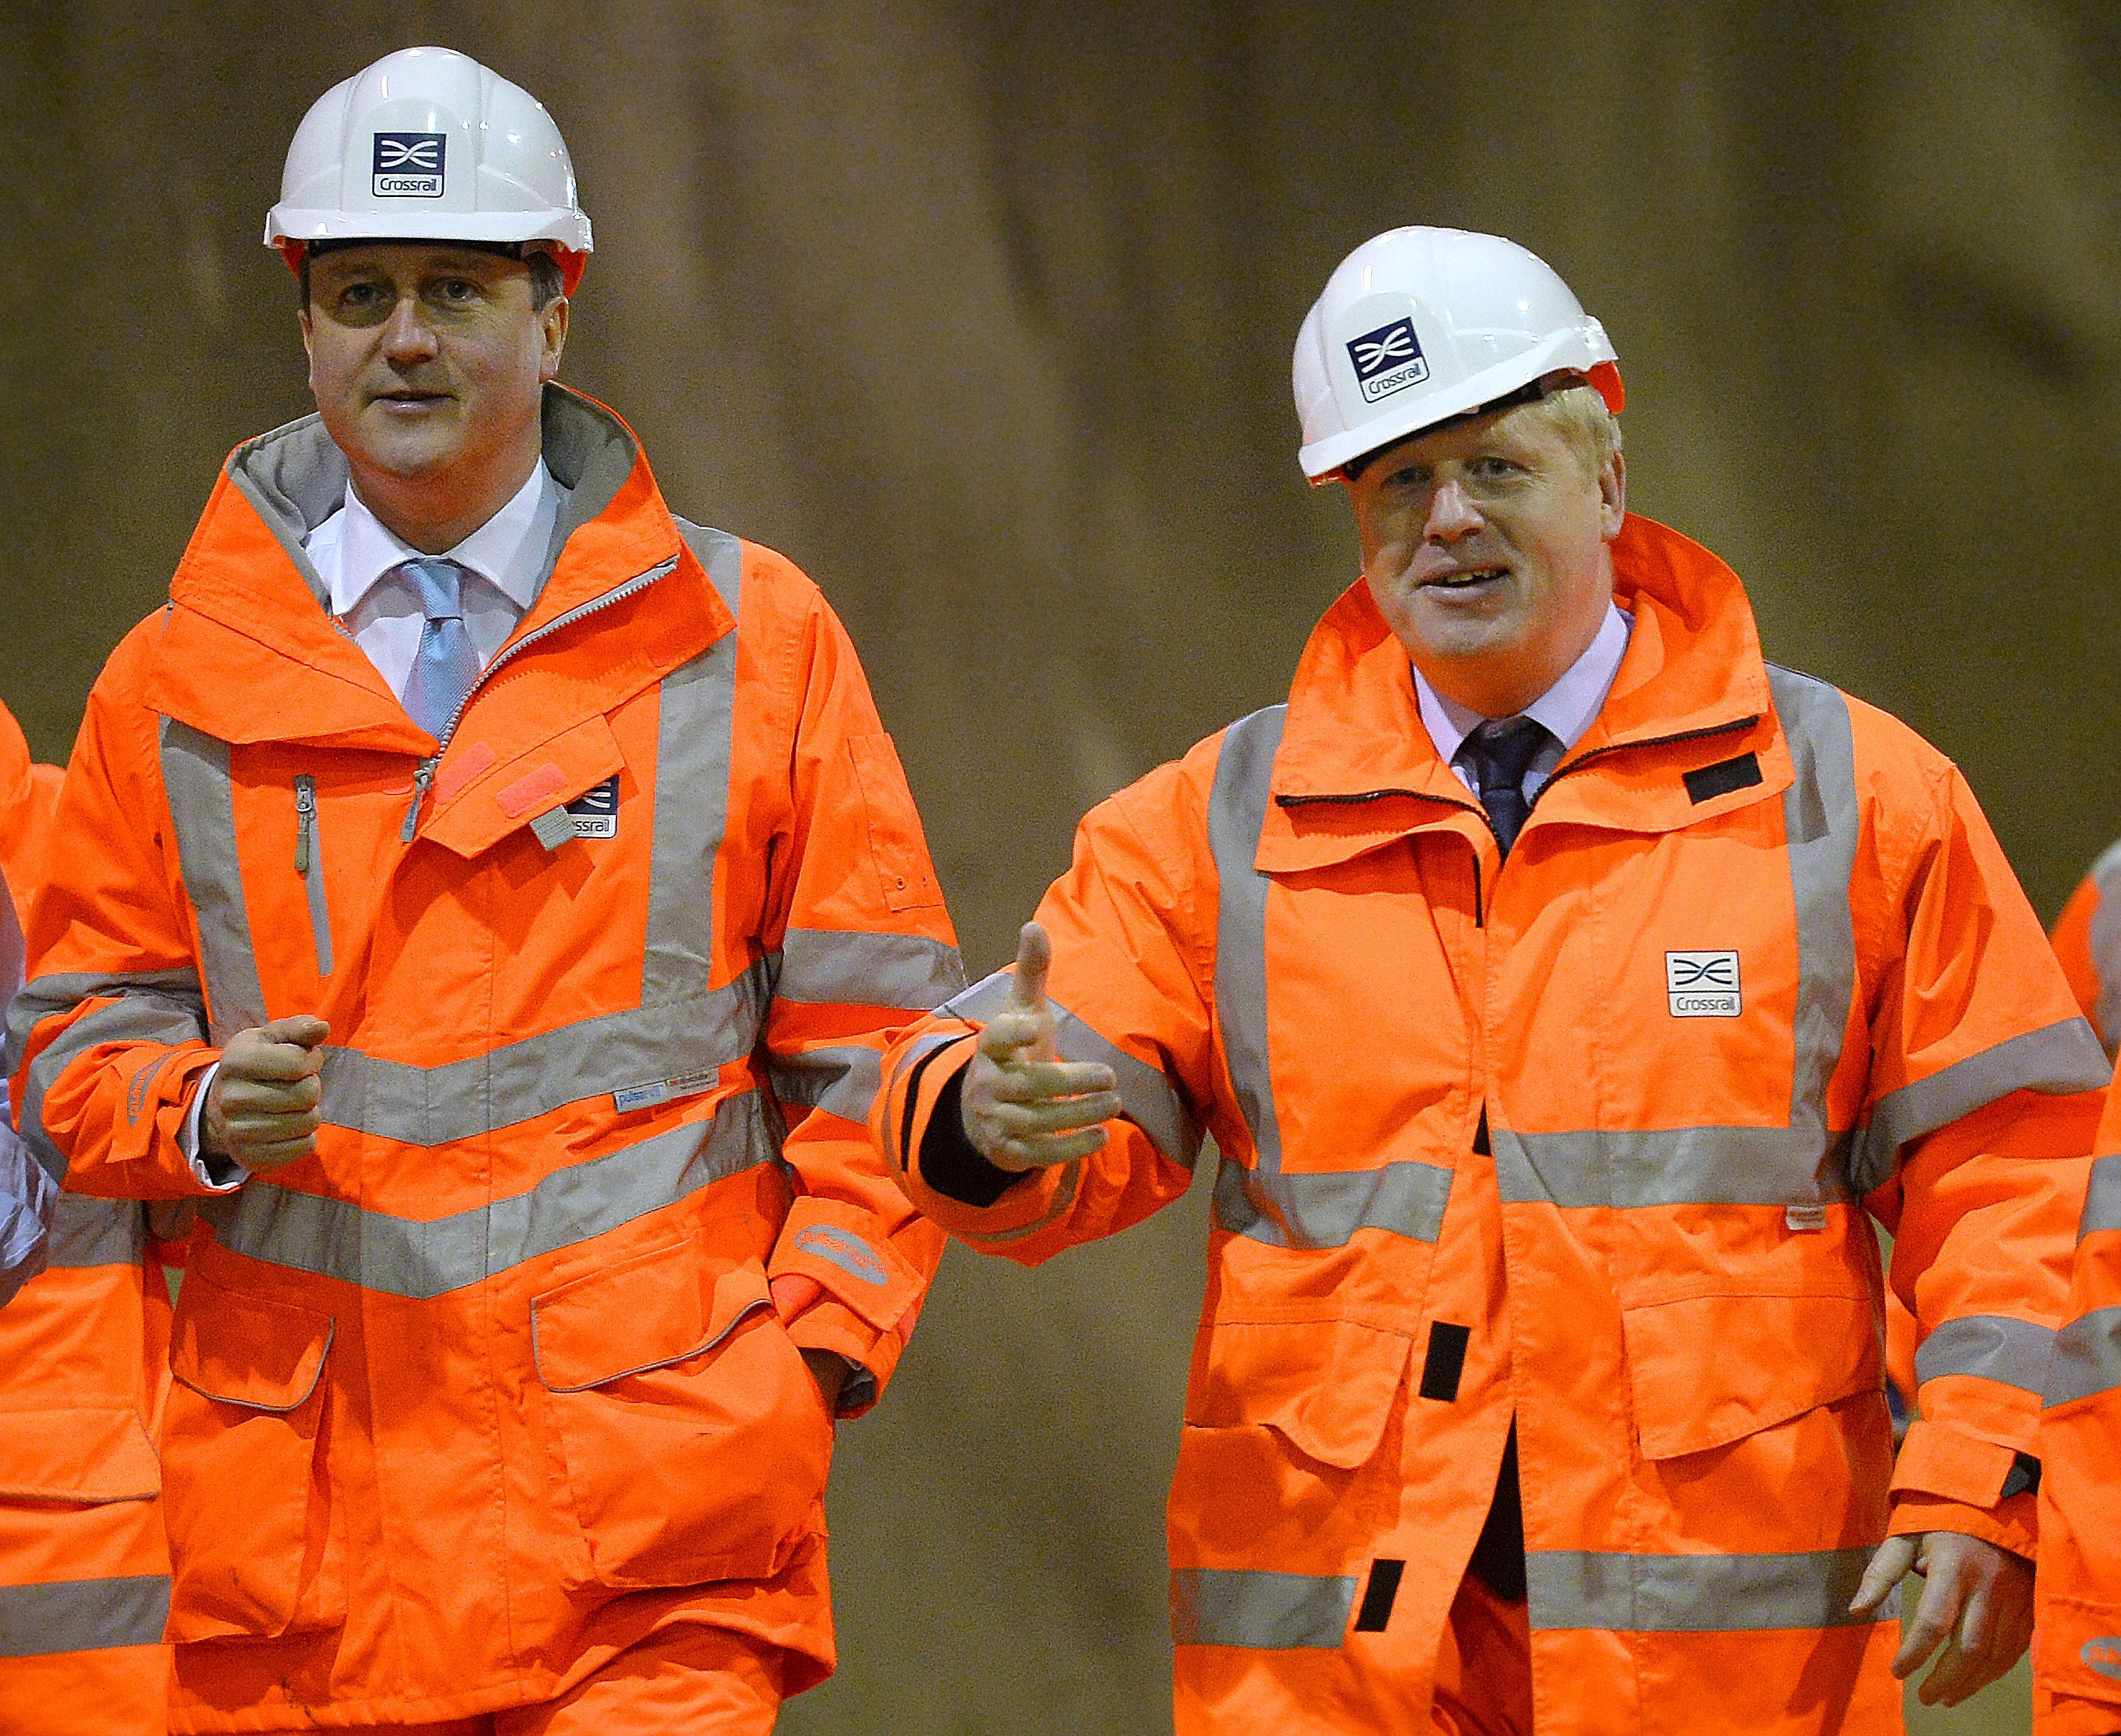 Prime Minister David Cameron (left) and Mayor of London Boris Johnson during a visit to a Crossrail construction site underneath Tottenham Court Road in central London. The Crossrail project, which is expected to be completed in 2018, will link Berkshire, west of London with Essex, east of London.